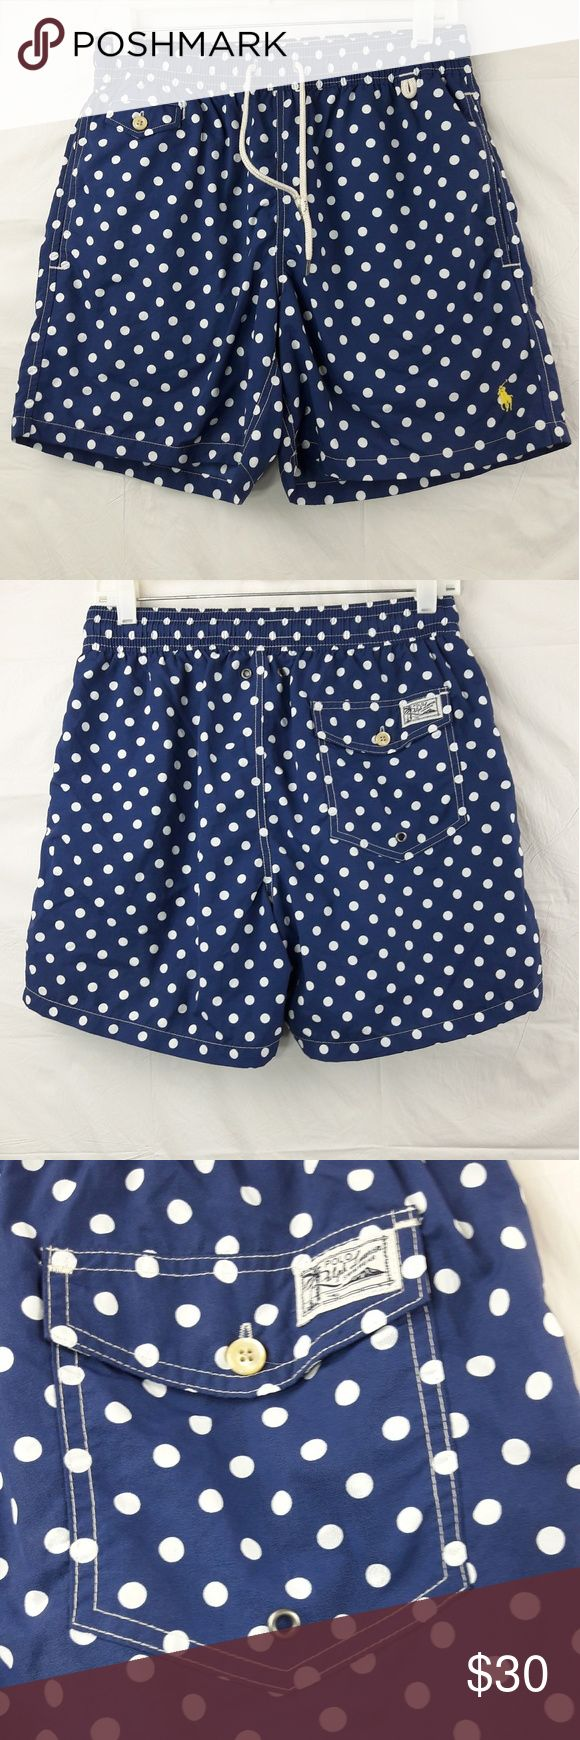 """Ralph Lauren Polka Swim Shorts Ralph Lauren Men's Small Blue Polka Dot Traveler Swim Shorts  Length:15.5"""" Waist:14"""" Inseam:6""""  Gently used with no flaws. Please see photos for exact details. Thank you for patronizing us. Ralph Lauren Swim Swim Trunks"""